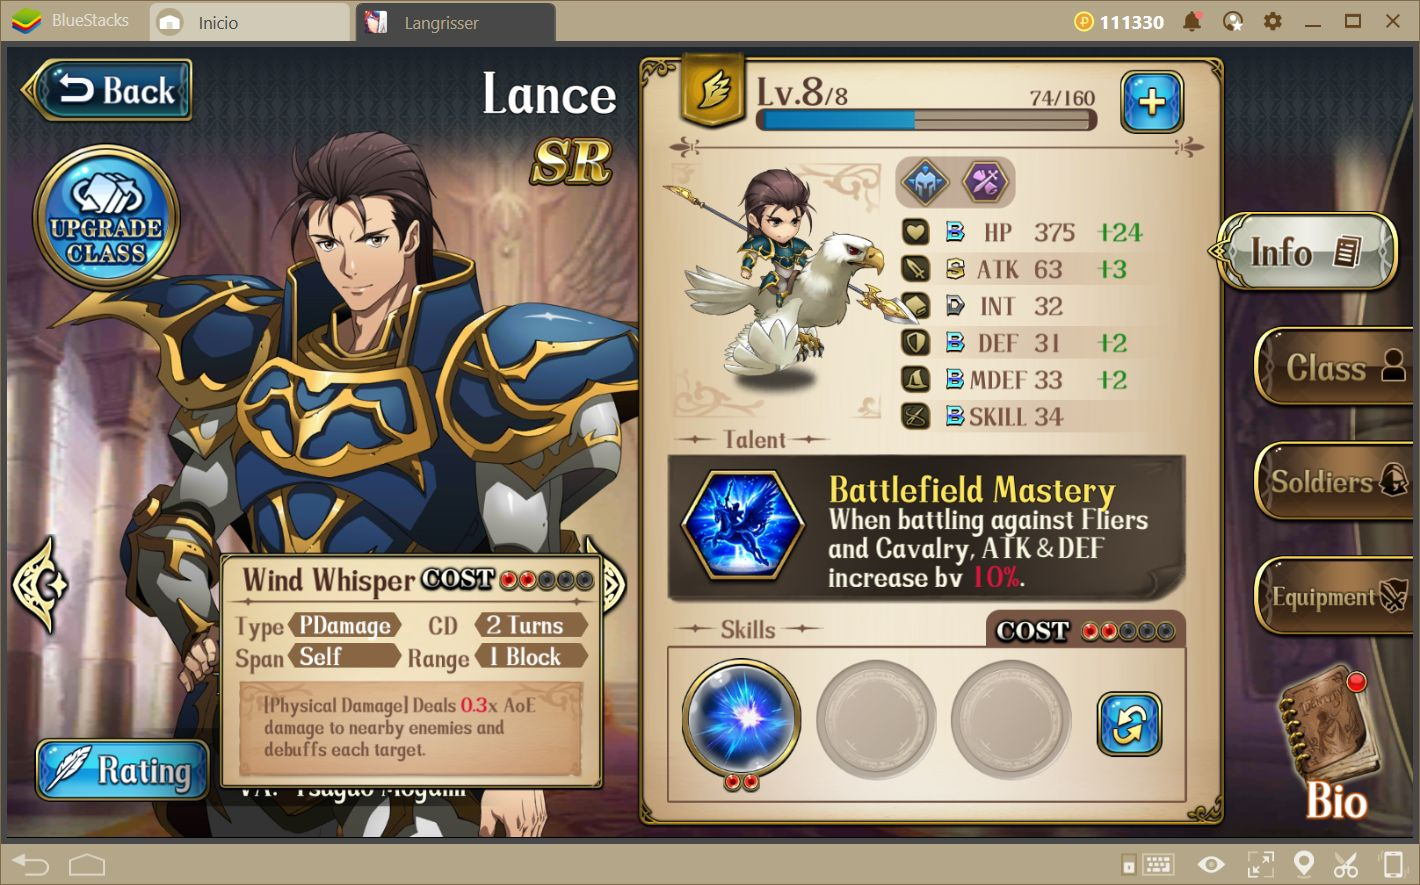 Langrisser—Build your own Dream Team